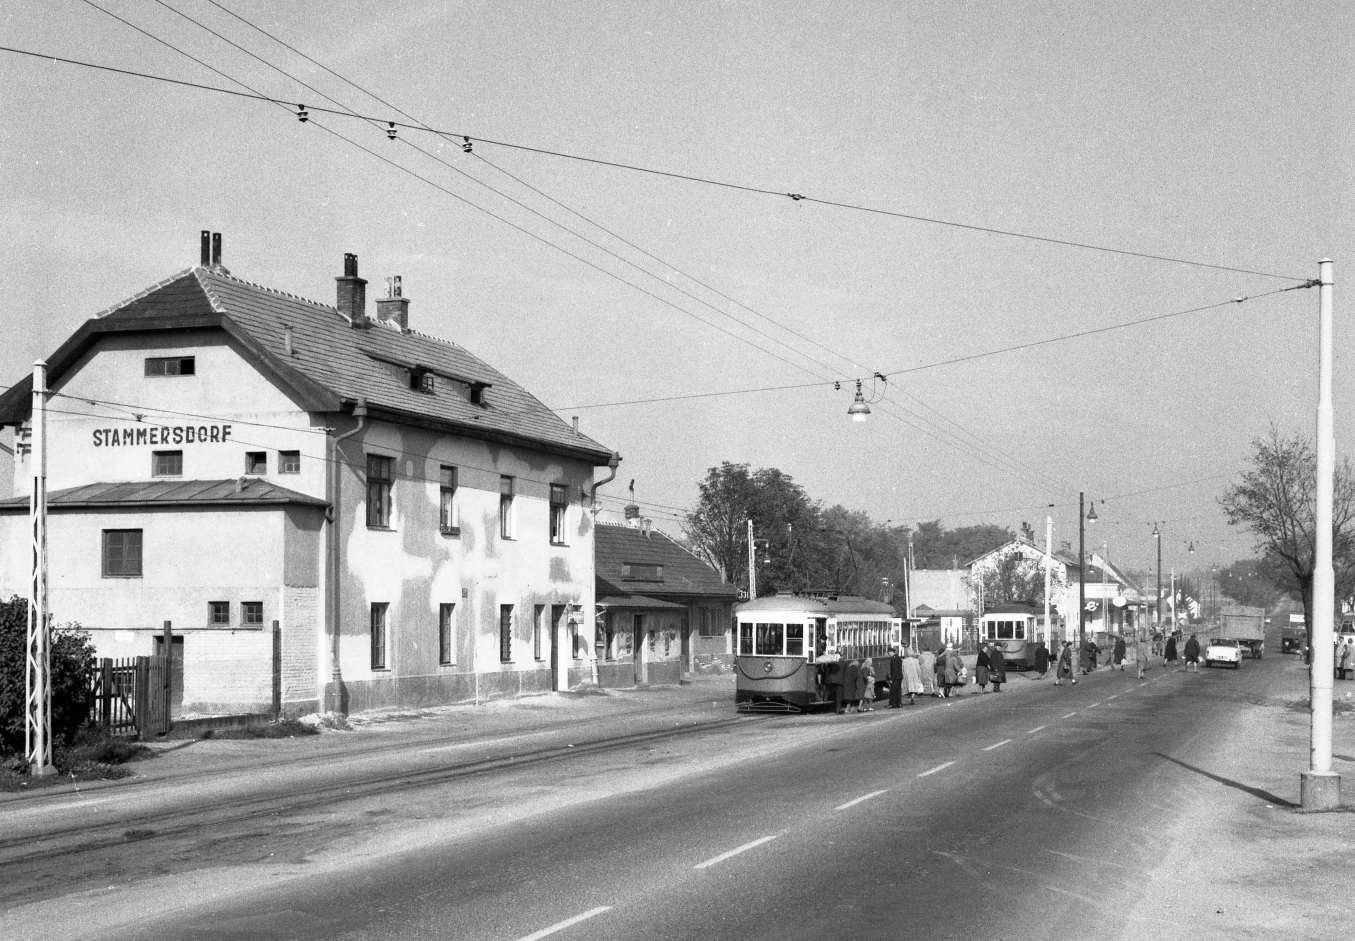 """An """"Amerikaner"""" on line 331 at the final stop in stammersdorf on october 1, 1963  (Wiener Linien)"""